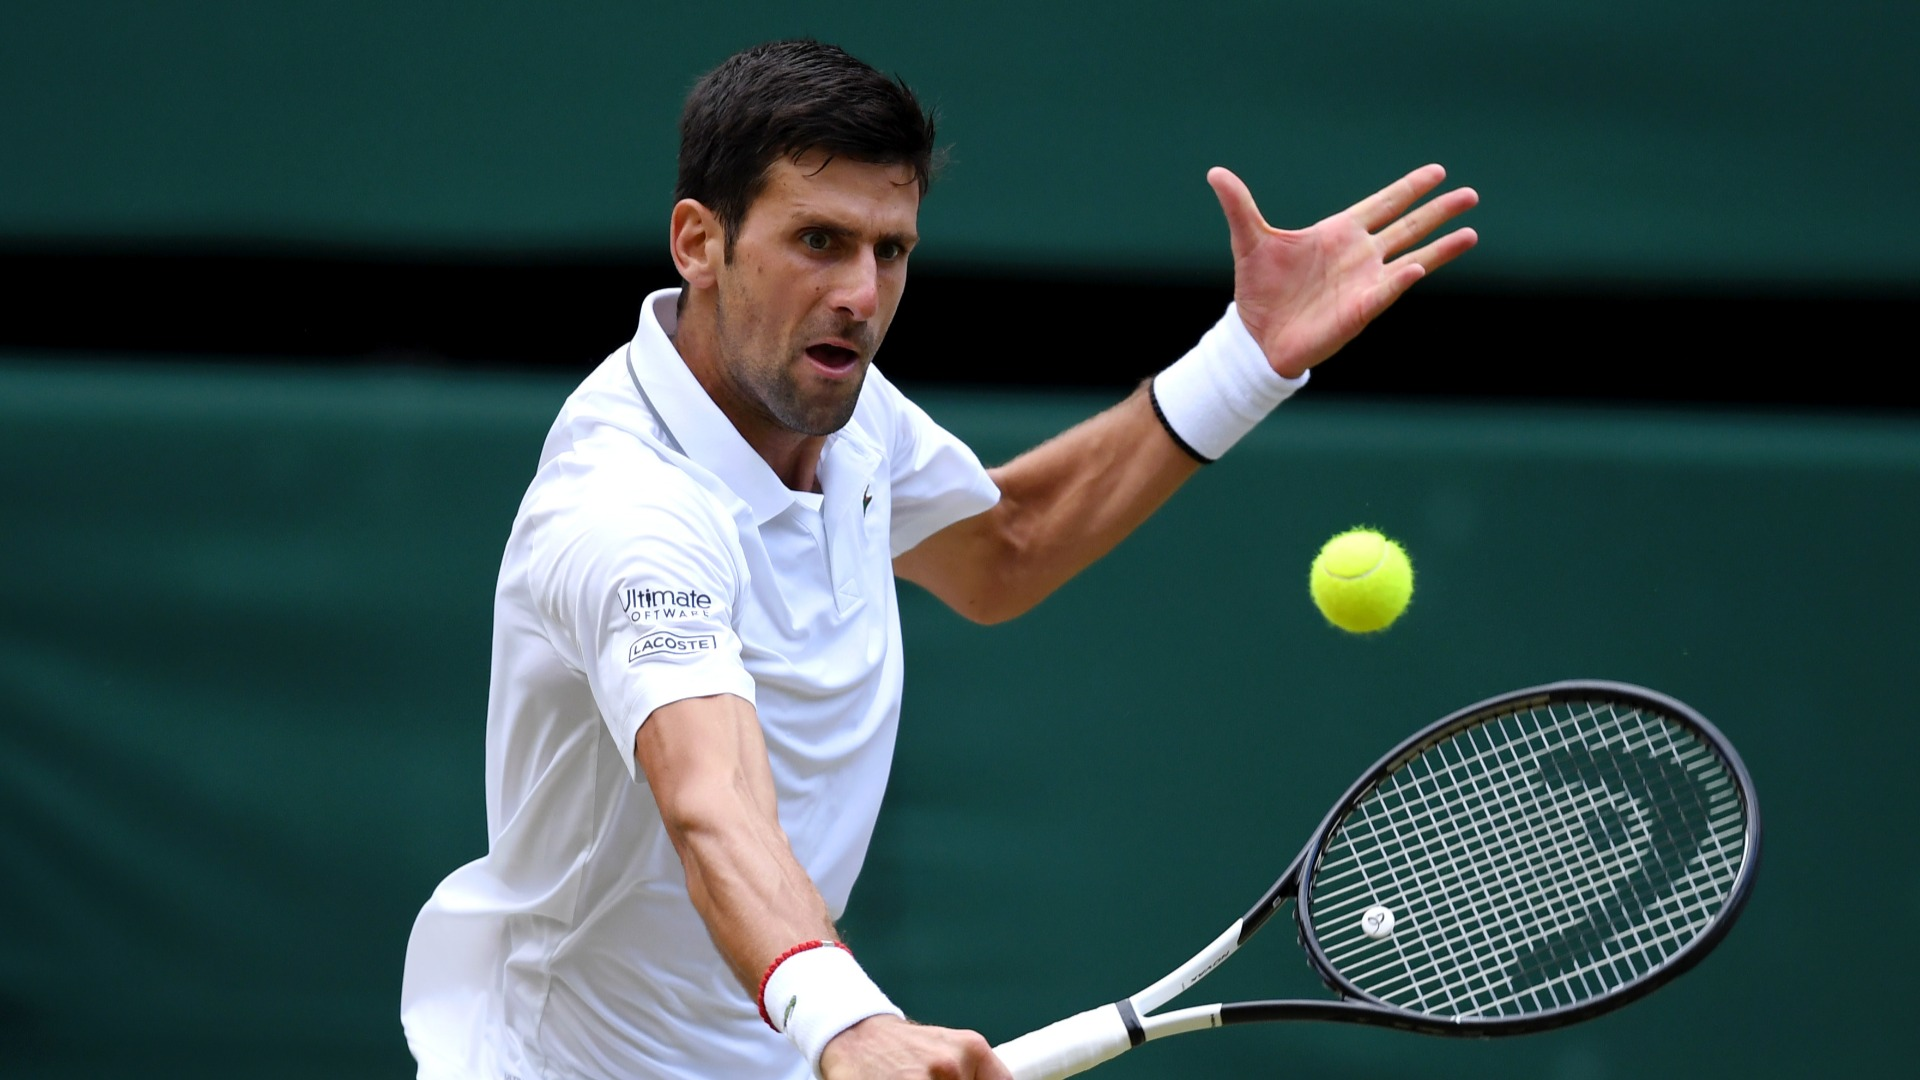 After winning Wimbledon, Novak Djokovic has decided to skip playing at the Rogers Cup.